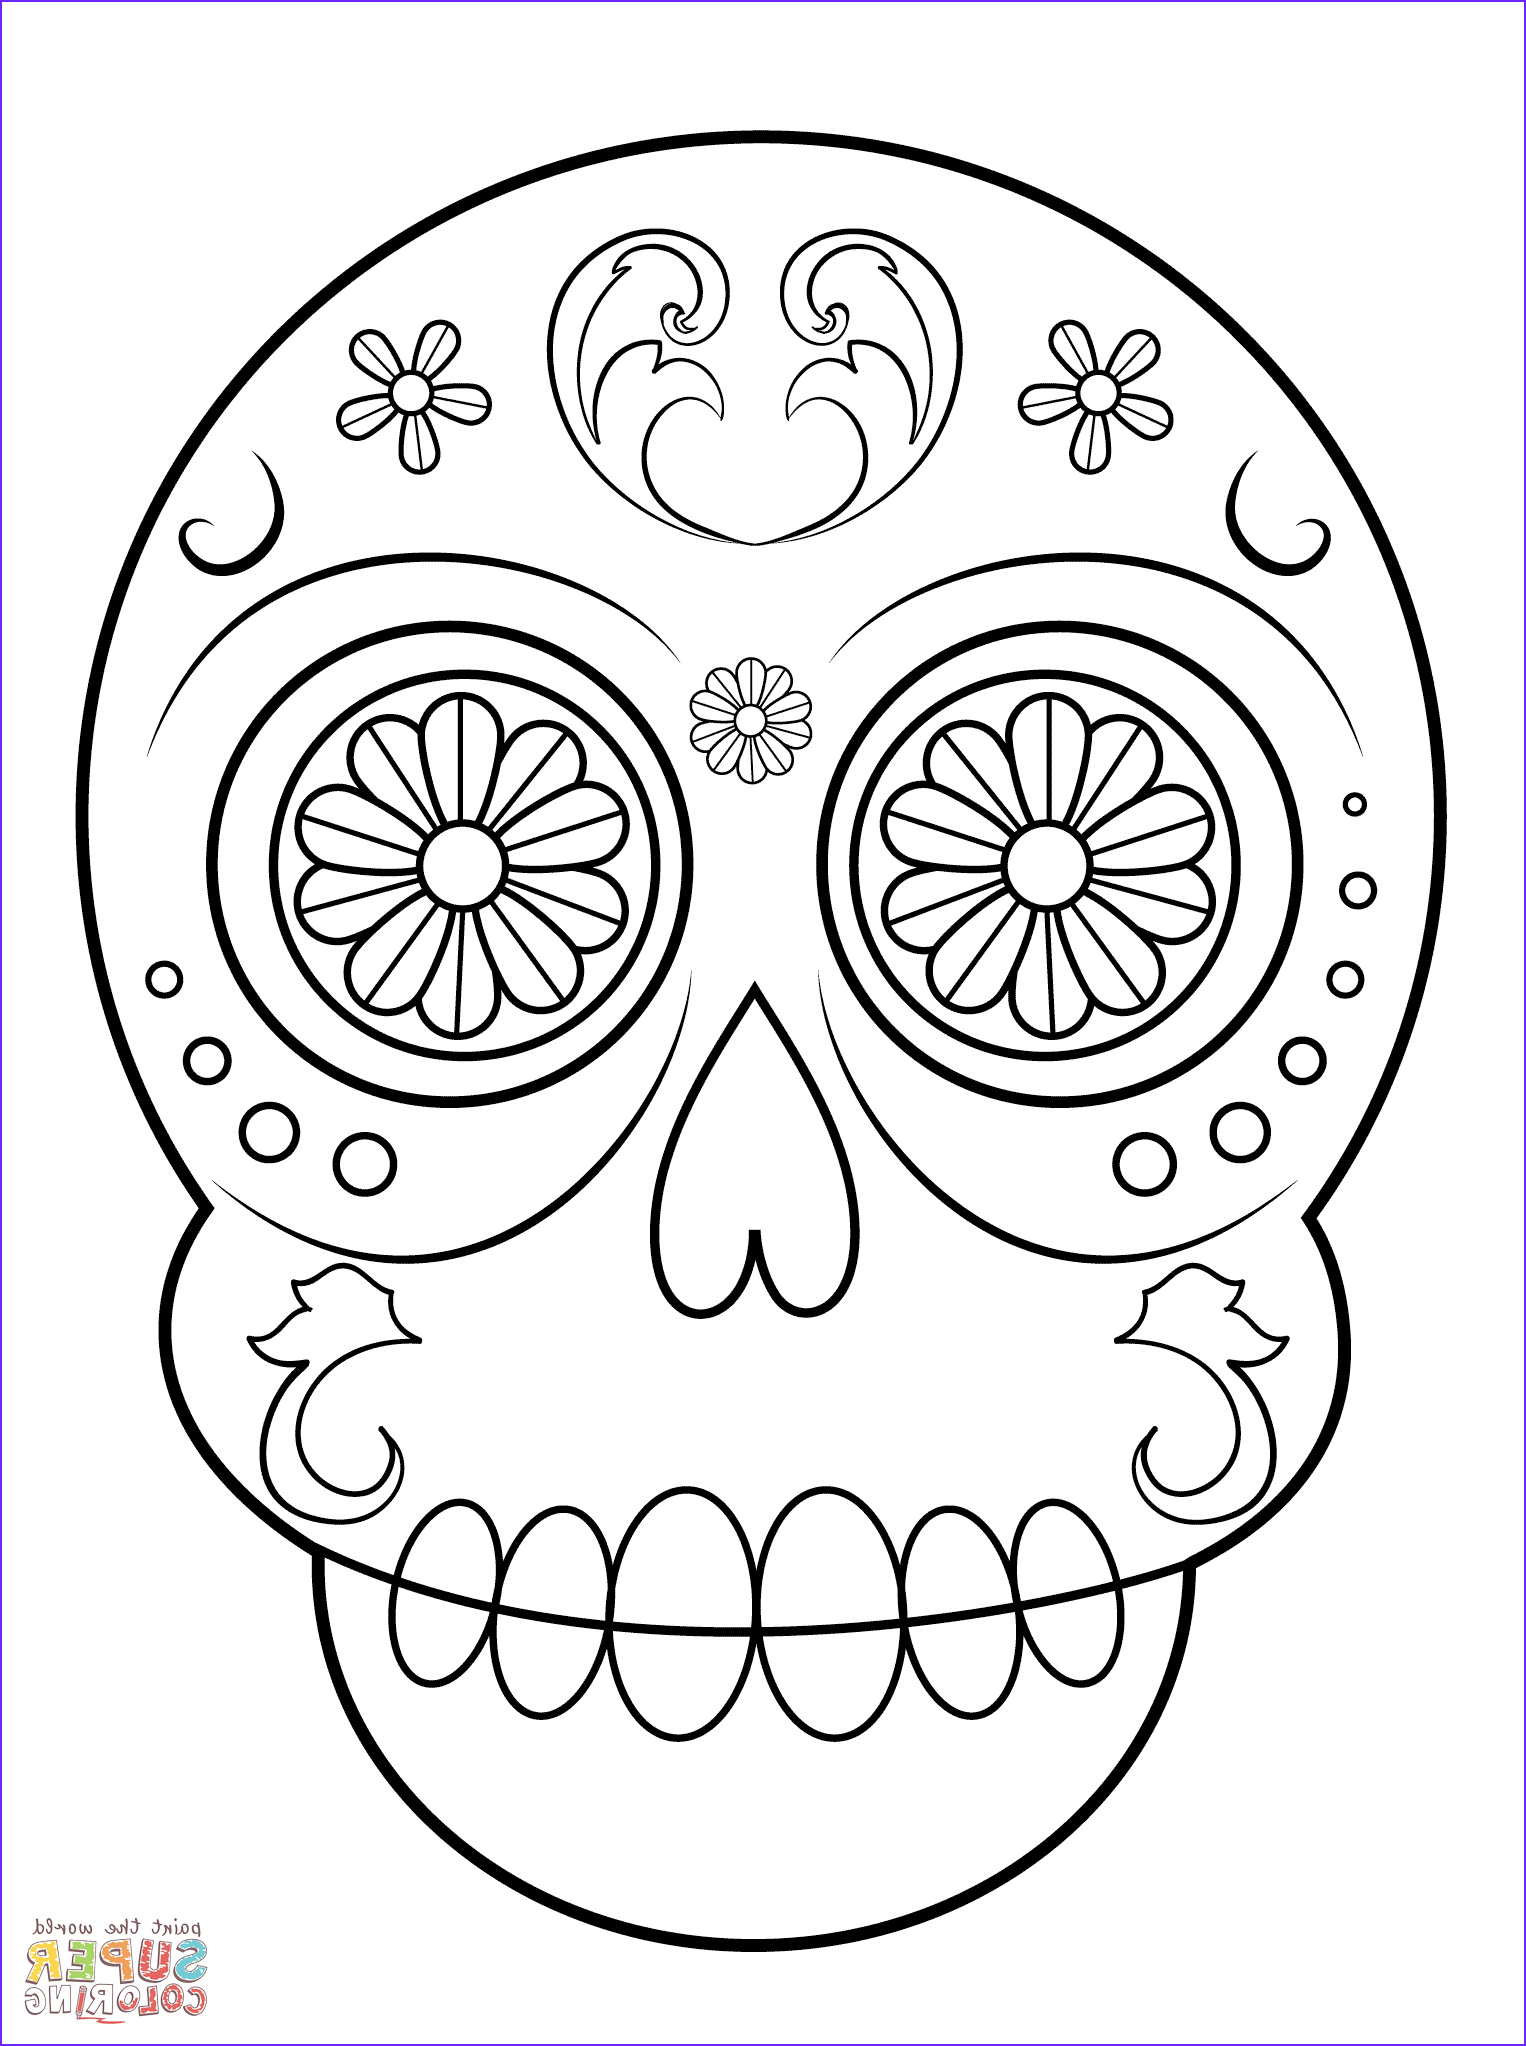 Sugar Skull Coloring Book Luxury Photos Simple Sugar Skull Coloring Page